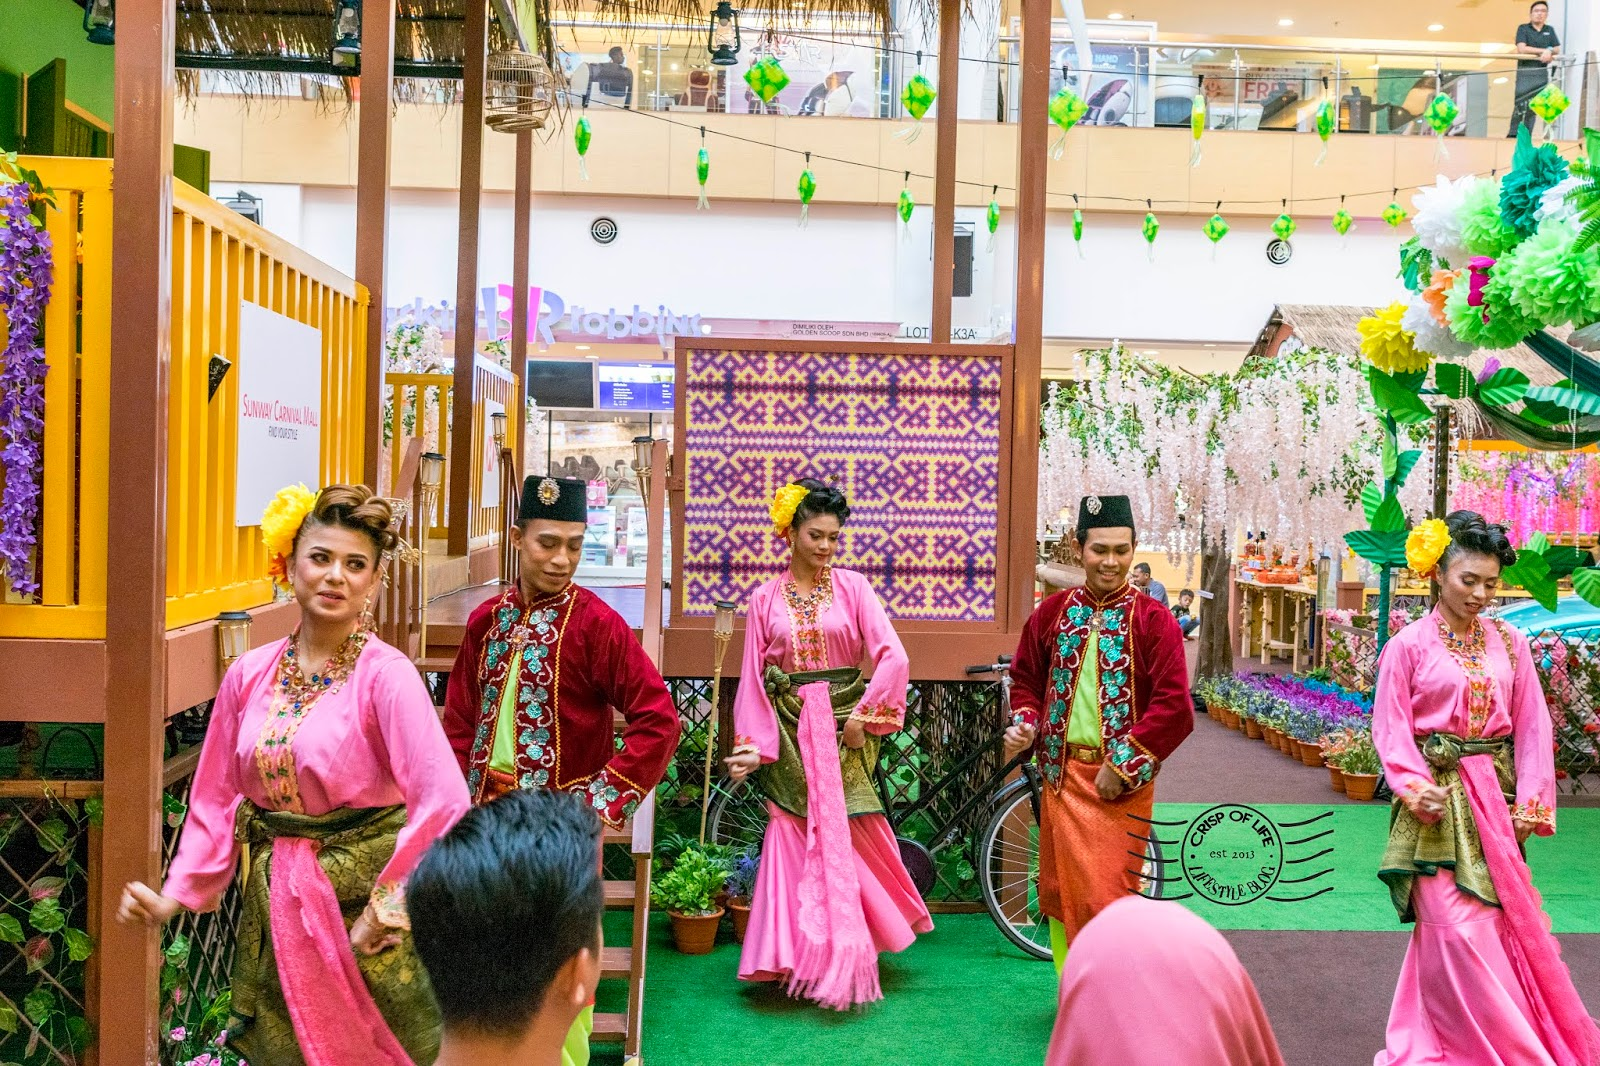 Celebrating Wonderful Raya Memories @ Sunway Carnival Mall, Penang